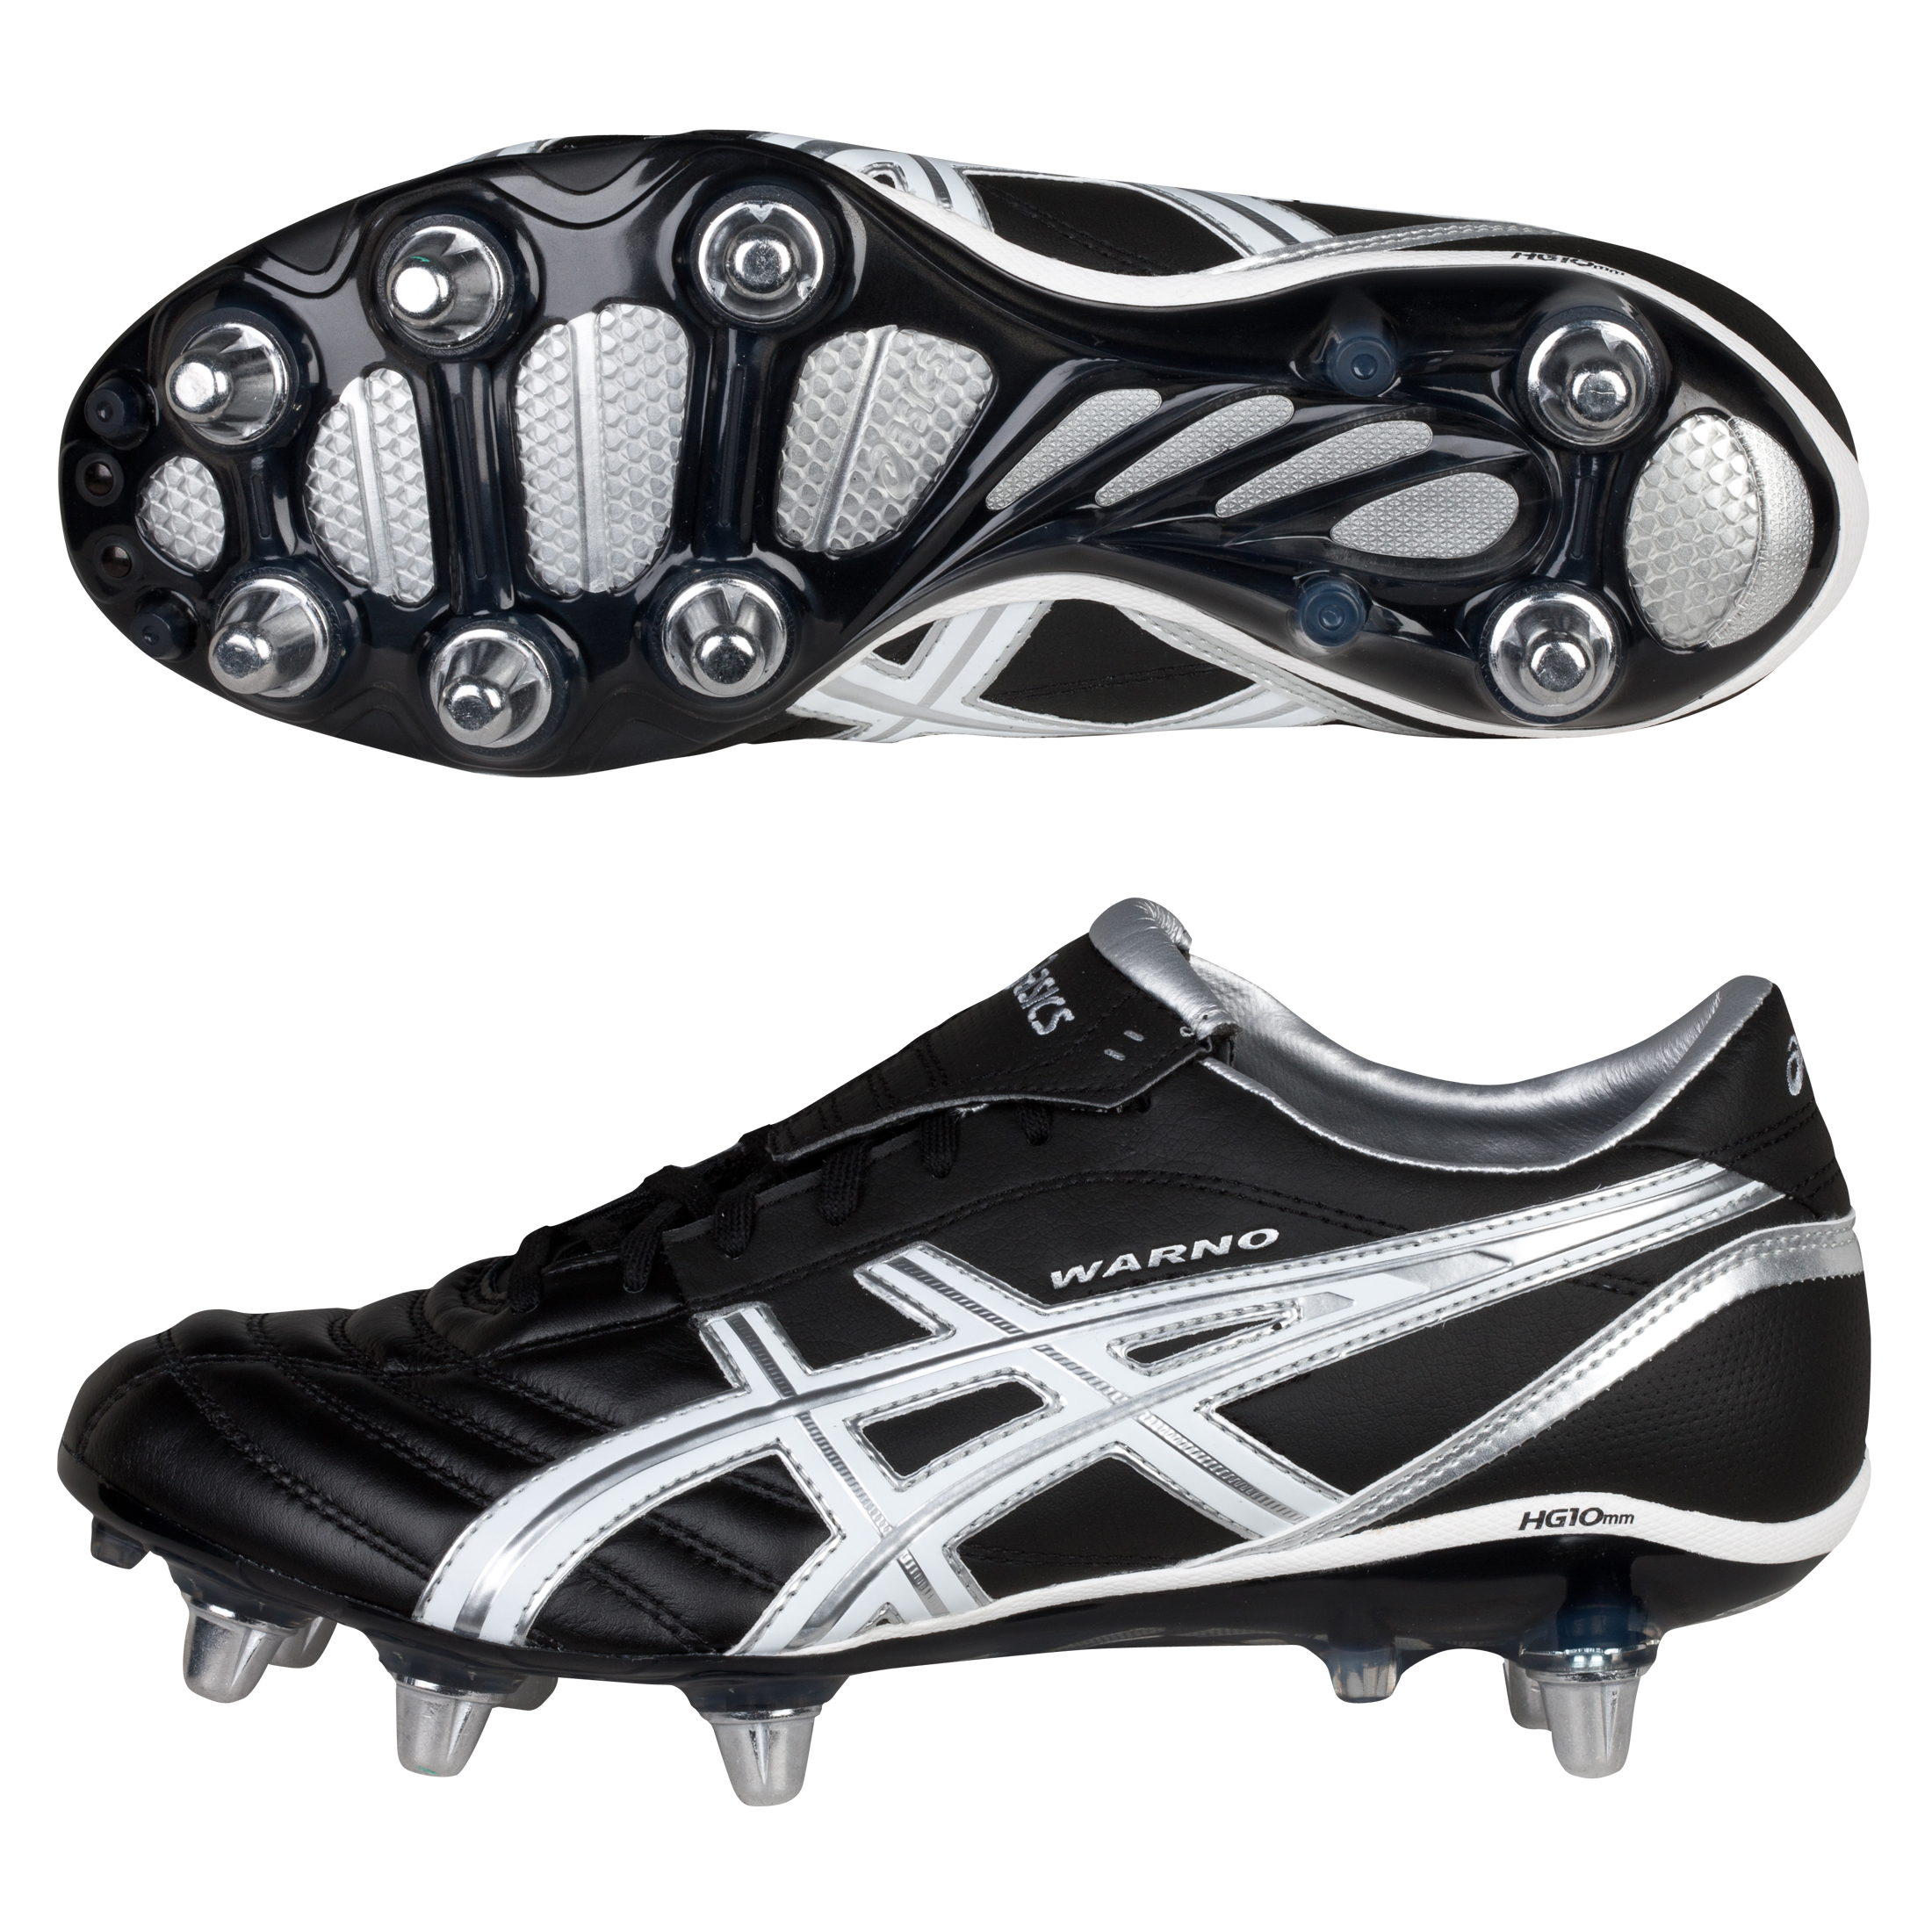 Asics Lethal Warno 2 Soft Ground Rugby Boots - Black/White/Silver